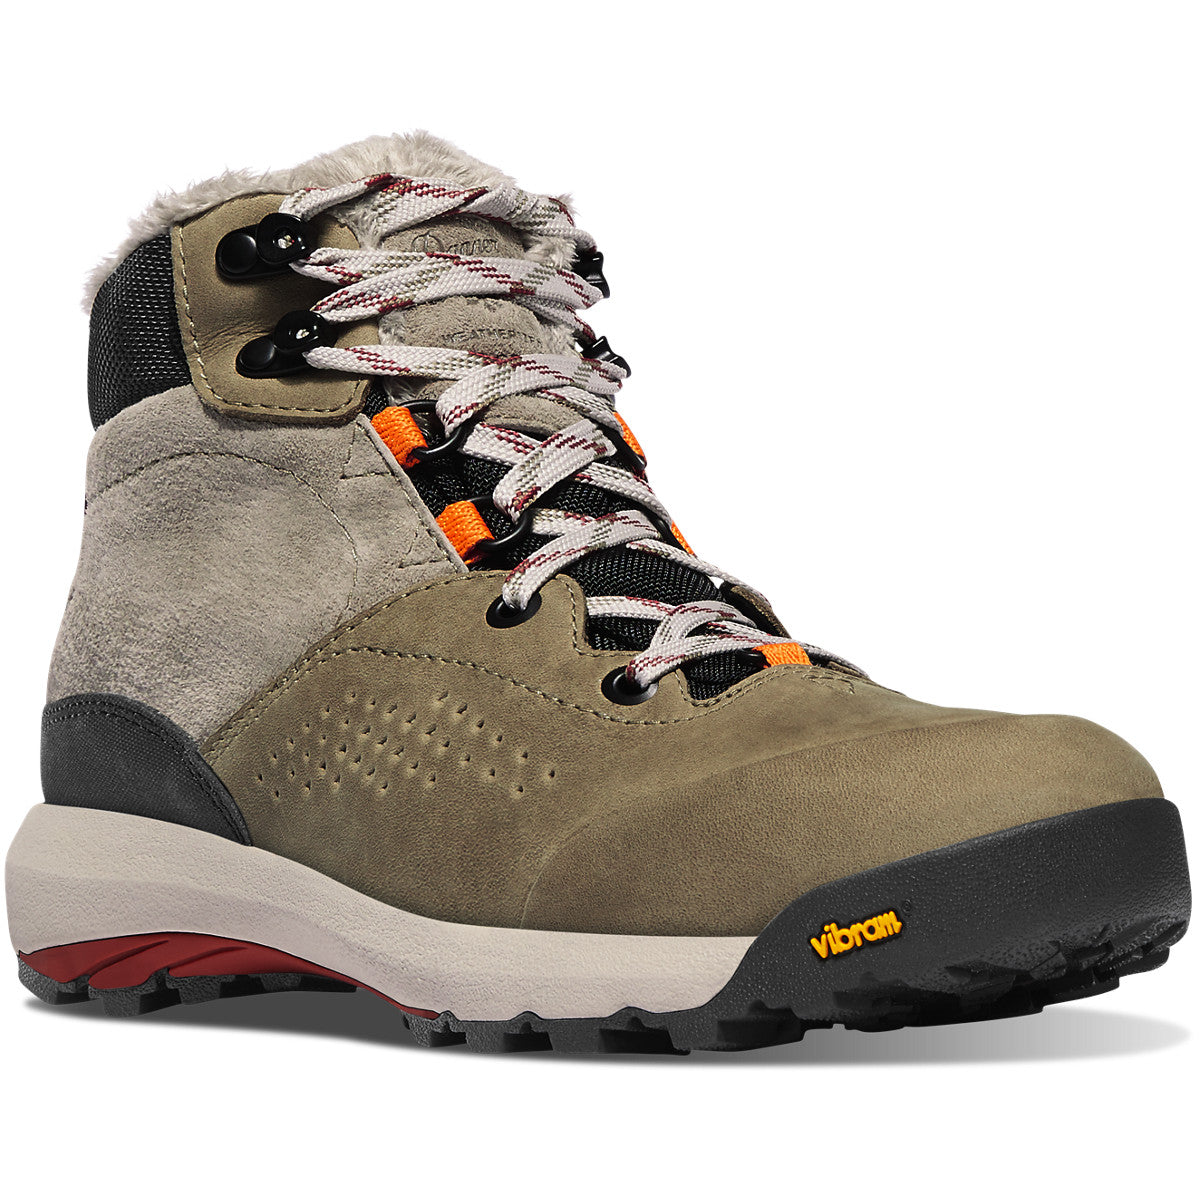 Danner Women's Inquire Mid Winter Boot - 88 Gear